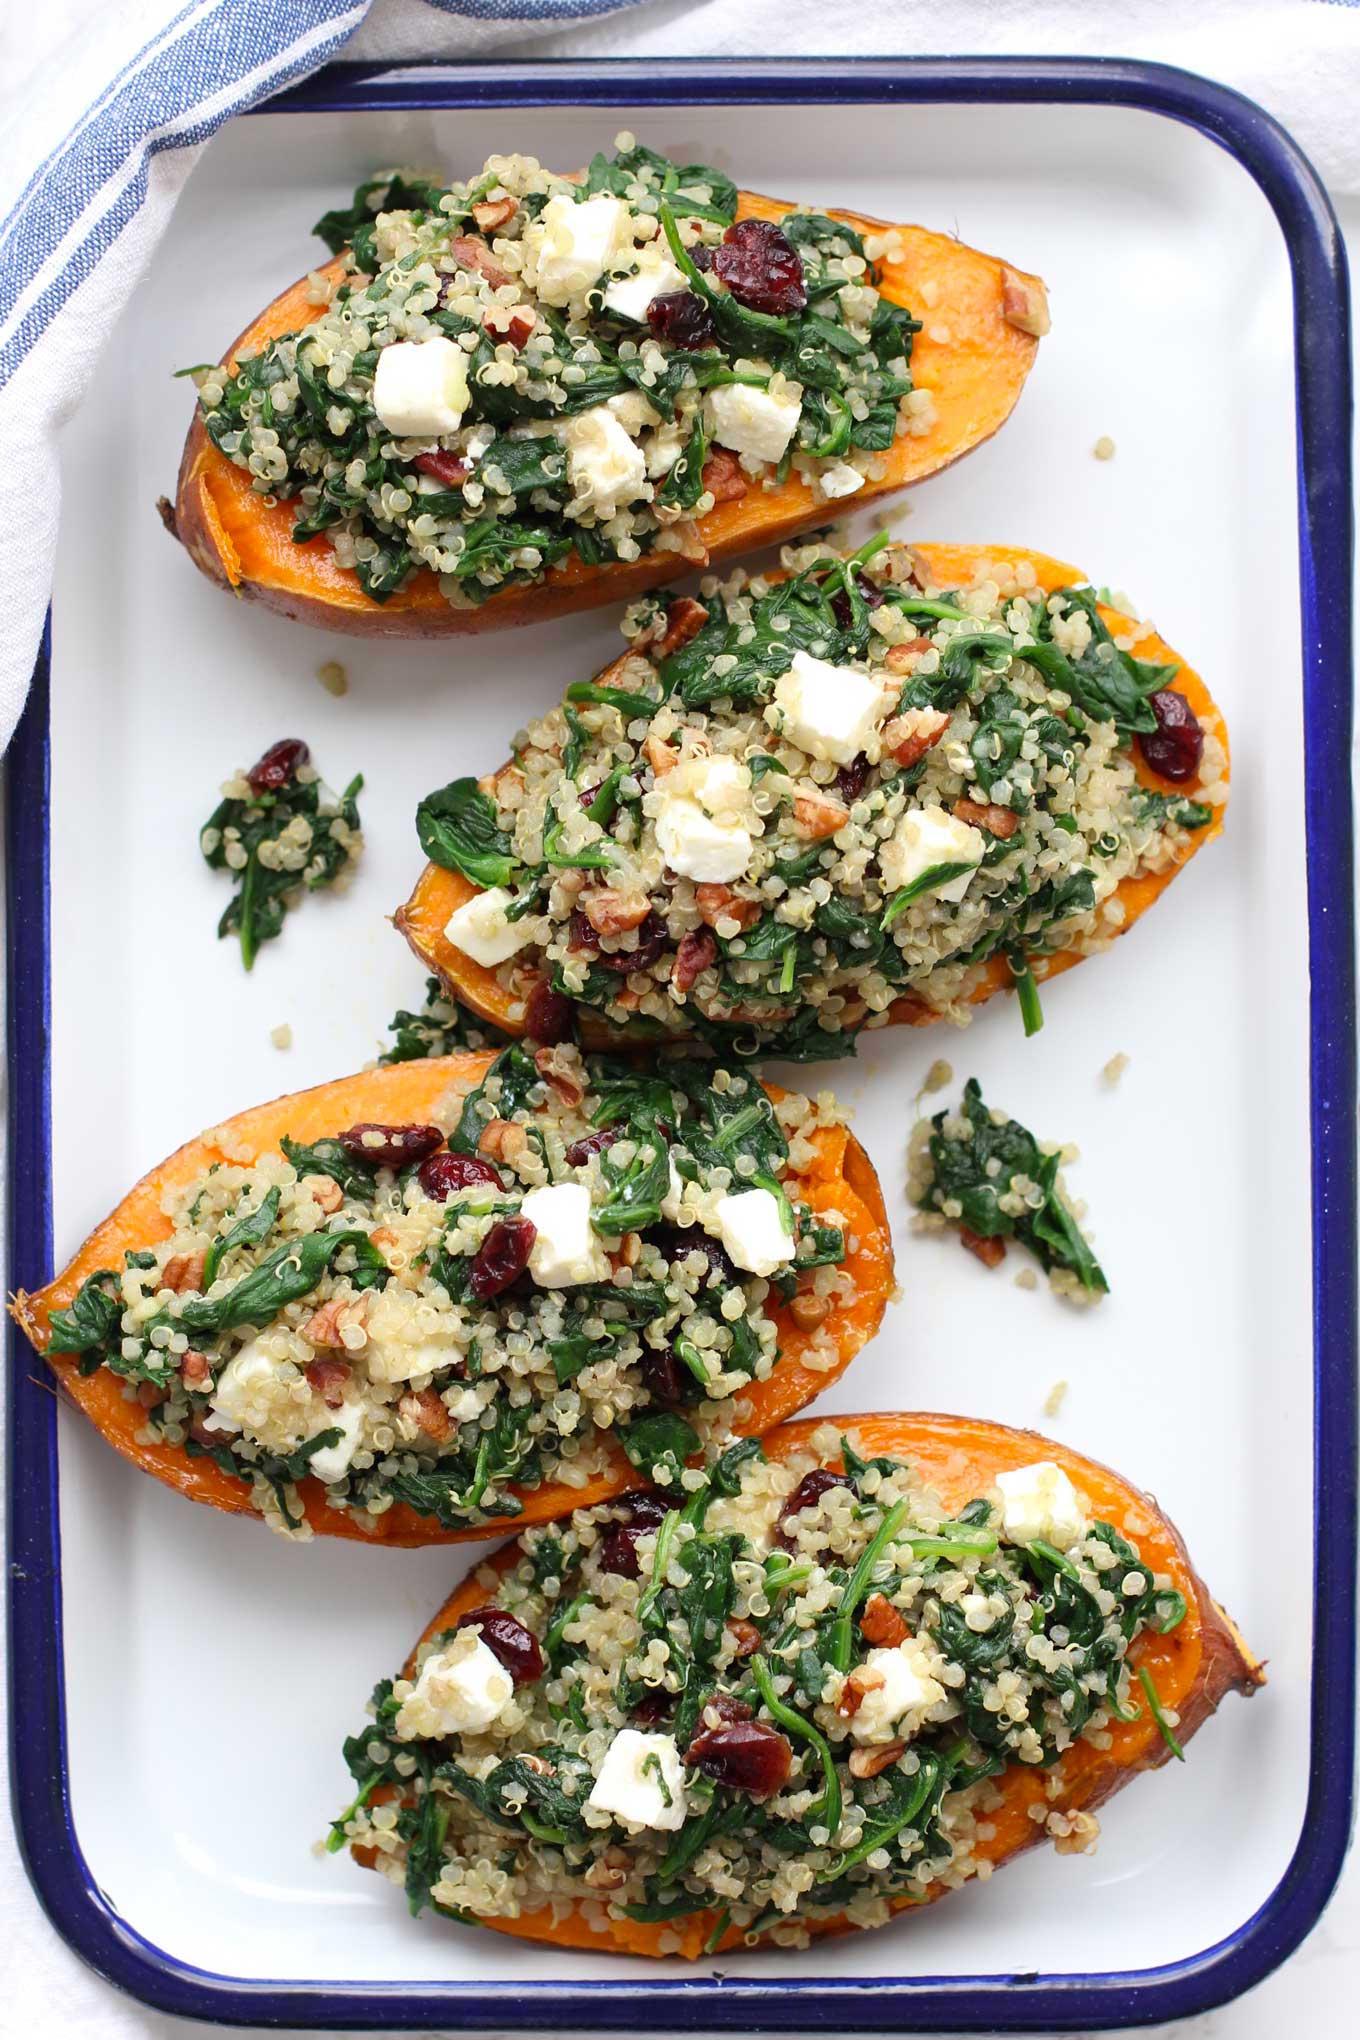 Roasted sweet potato stuffed with quinoa and spinach 1